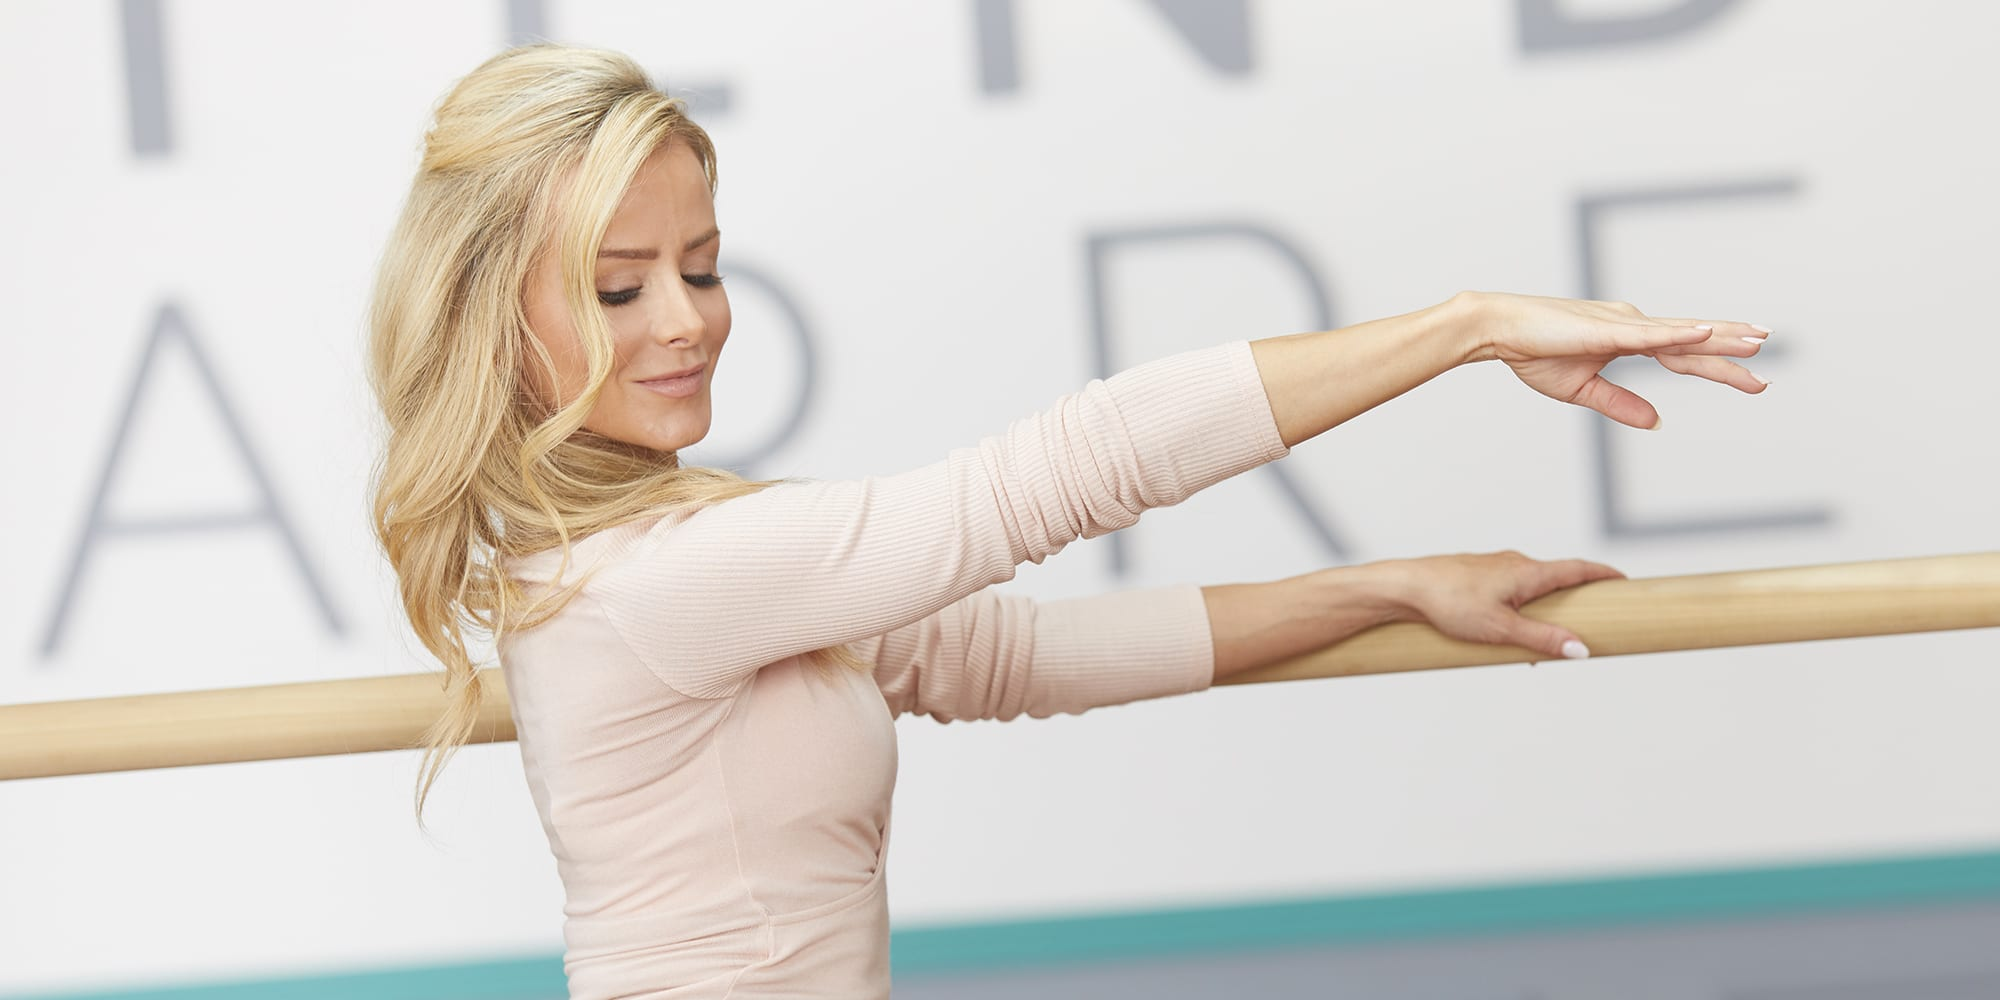 Raising the Barre: Get to Know Andrea Rogers, Creator of Xtend Barre